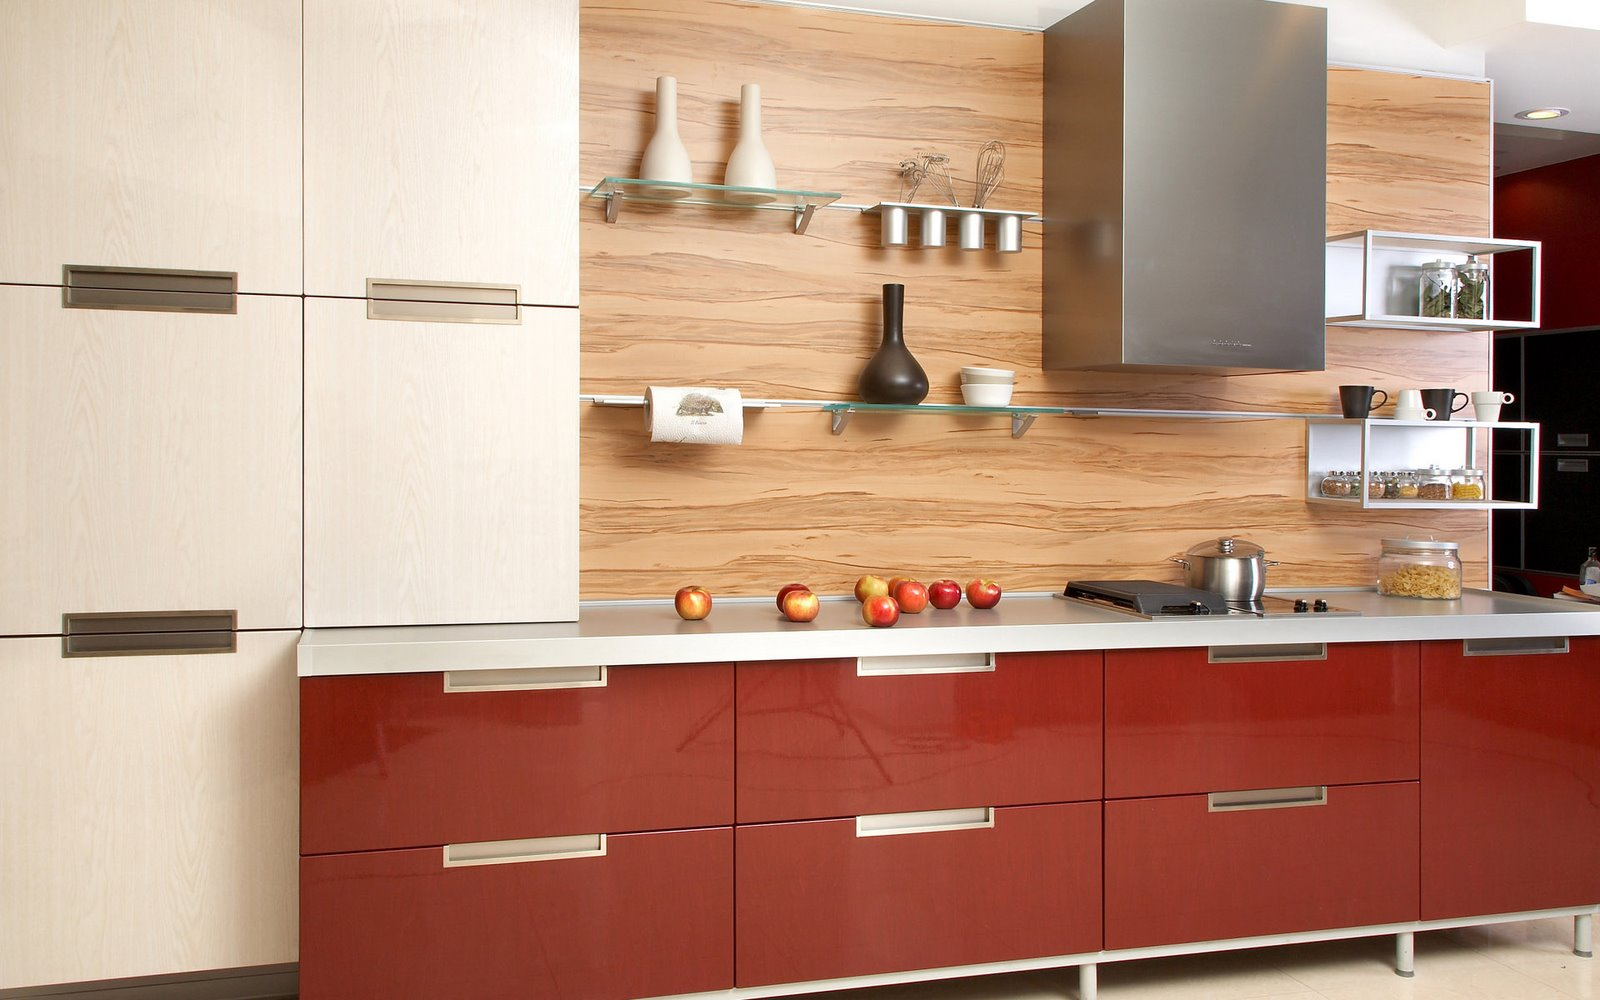 Remarkable Modern Kitchen Backsplash Ideas 1600 x 1000 · 189 kB · jpeg